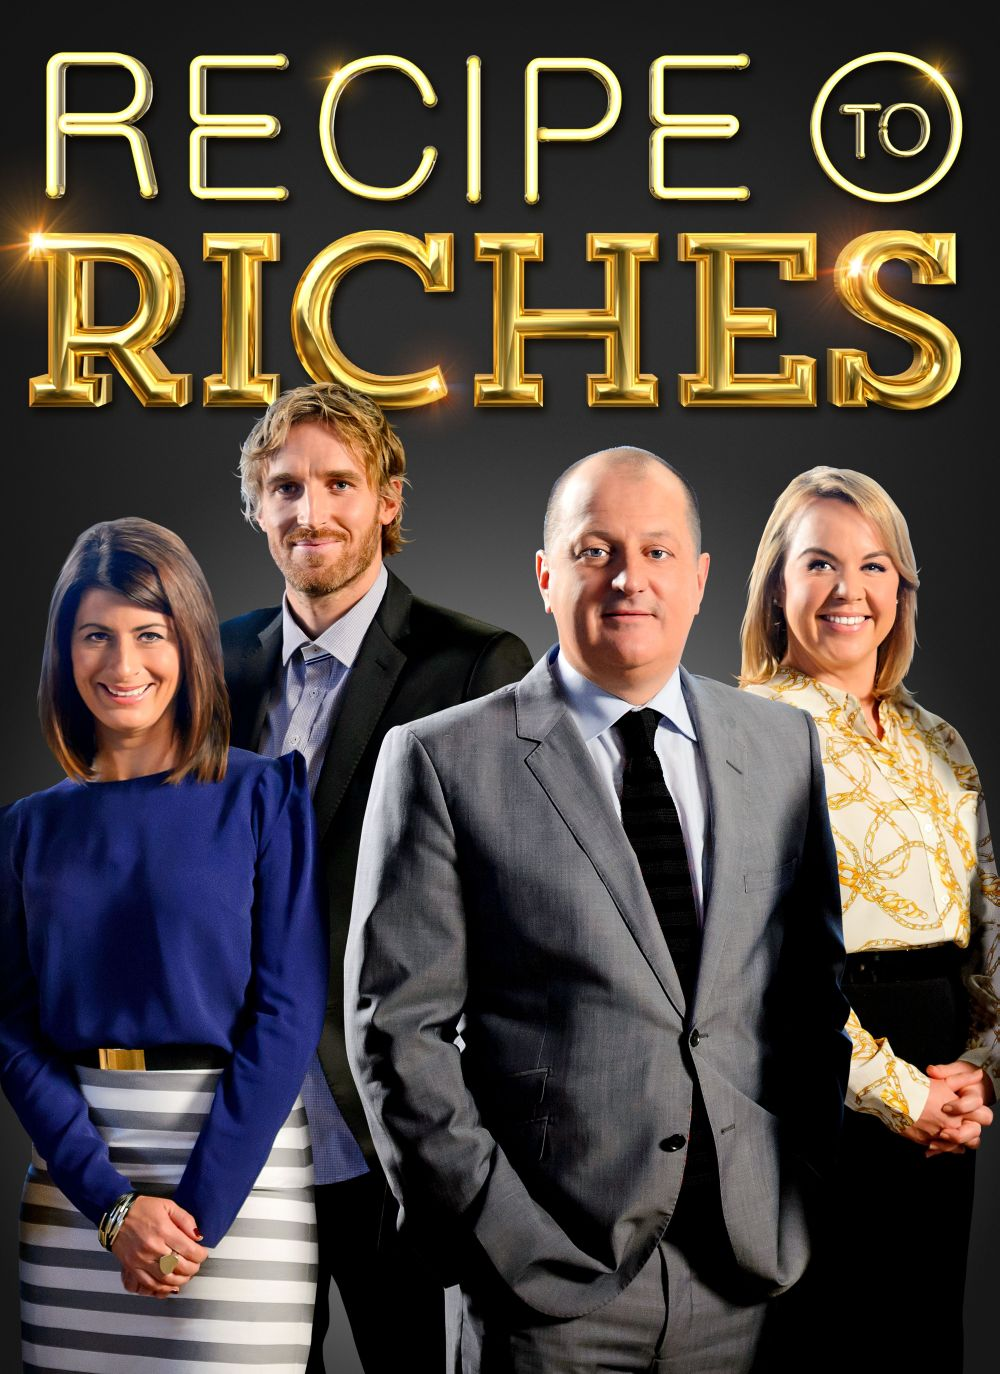 Recipe To Riches: Season 2